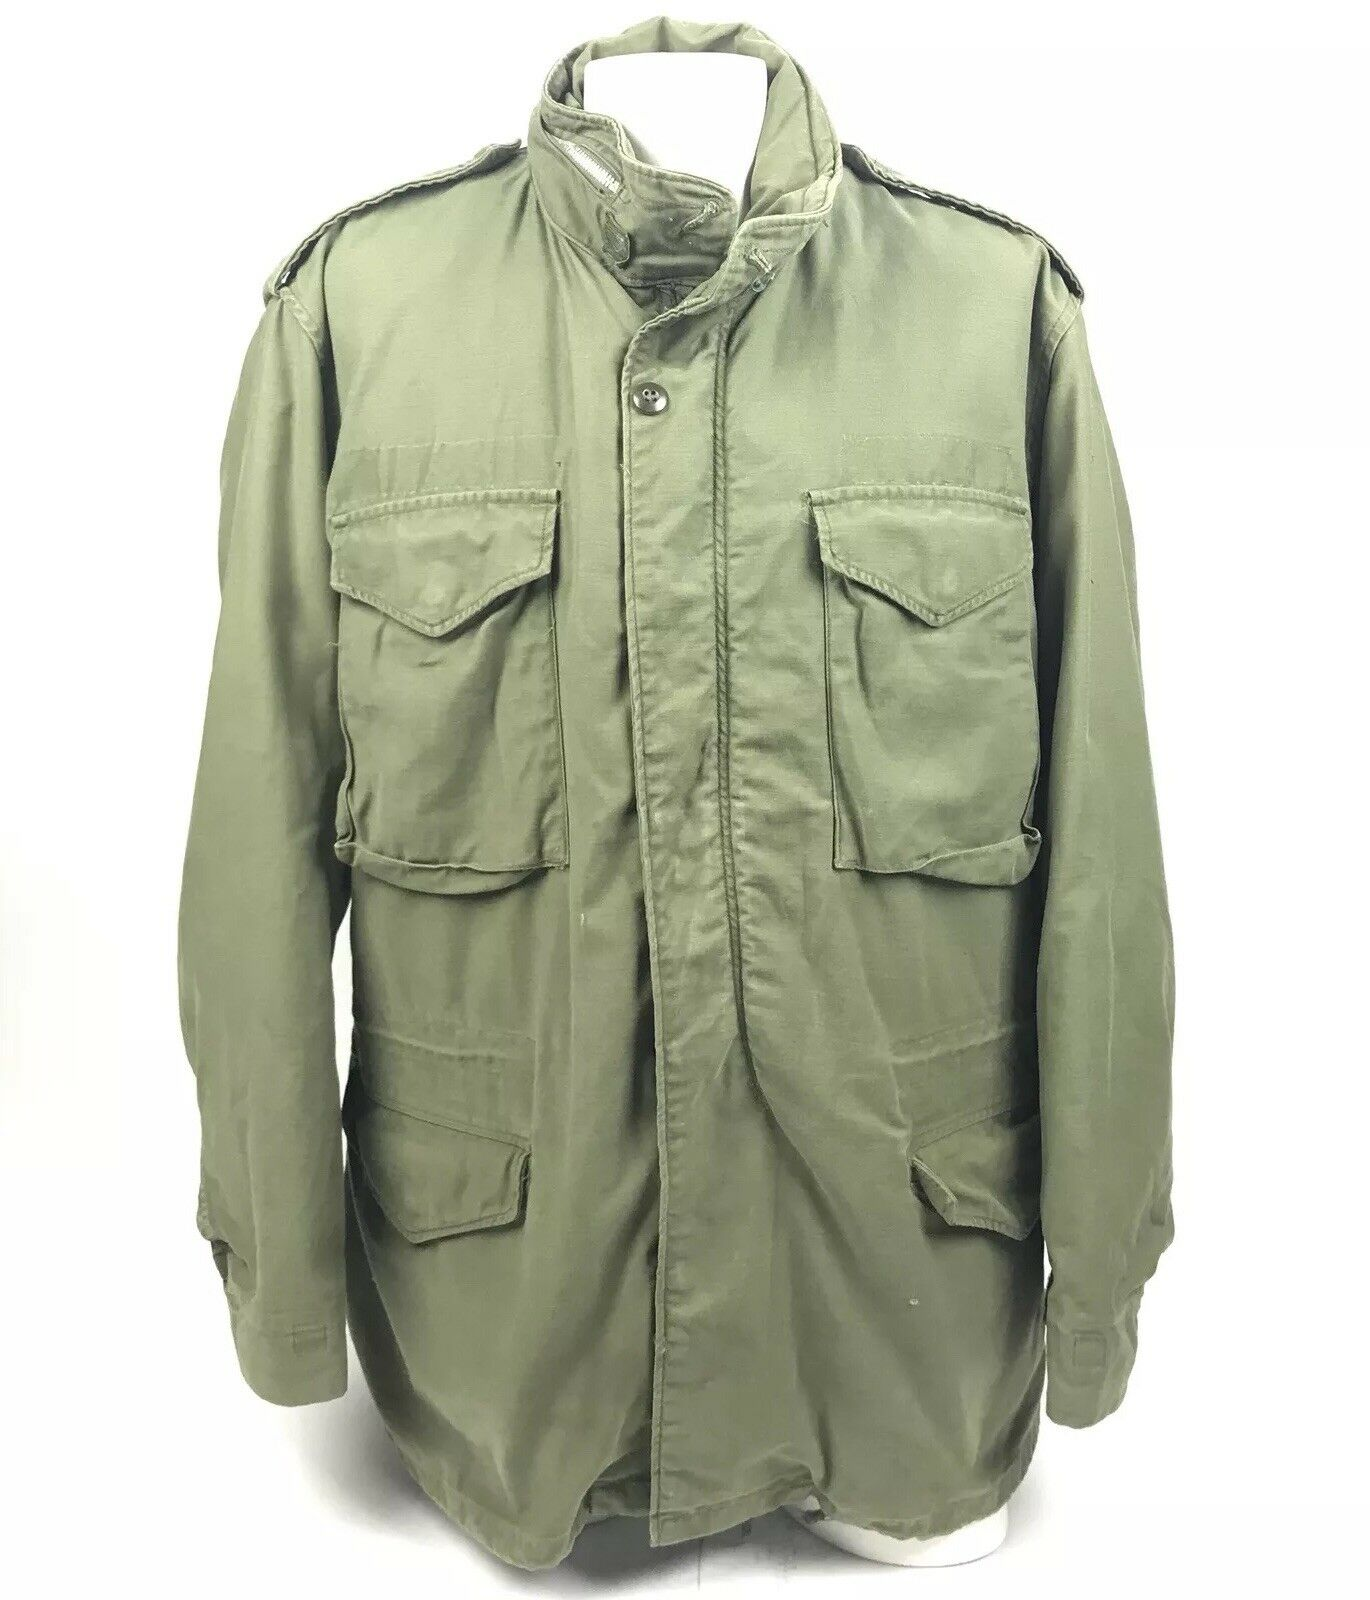 Authentic US Military  Herren Cold Weather Field Coat 70s Lined OG-107 Large Long